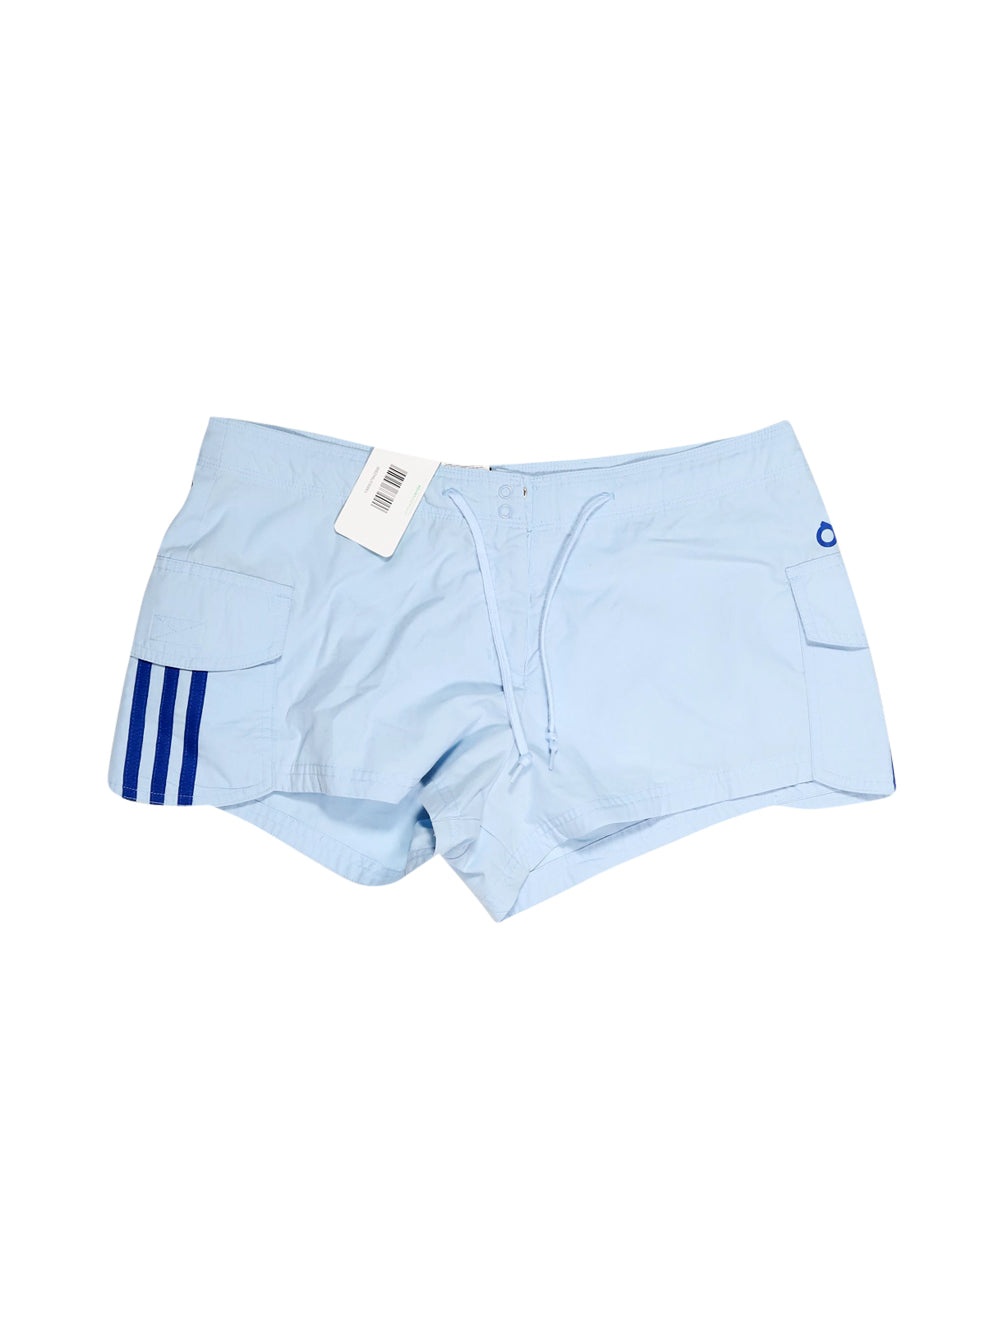 Front photo of Preloved Adidas Light-blue Woman's sport trousers - size 12/L